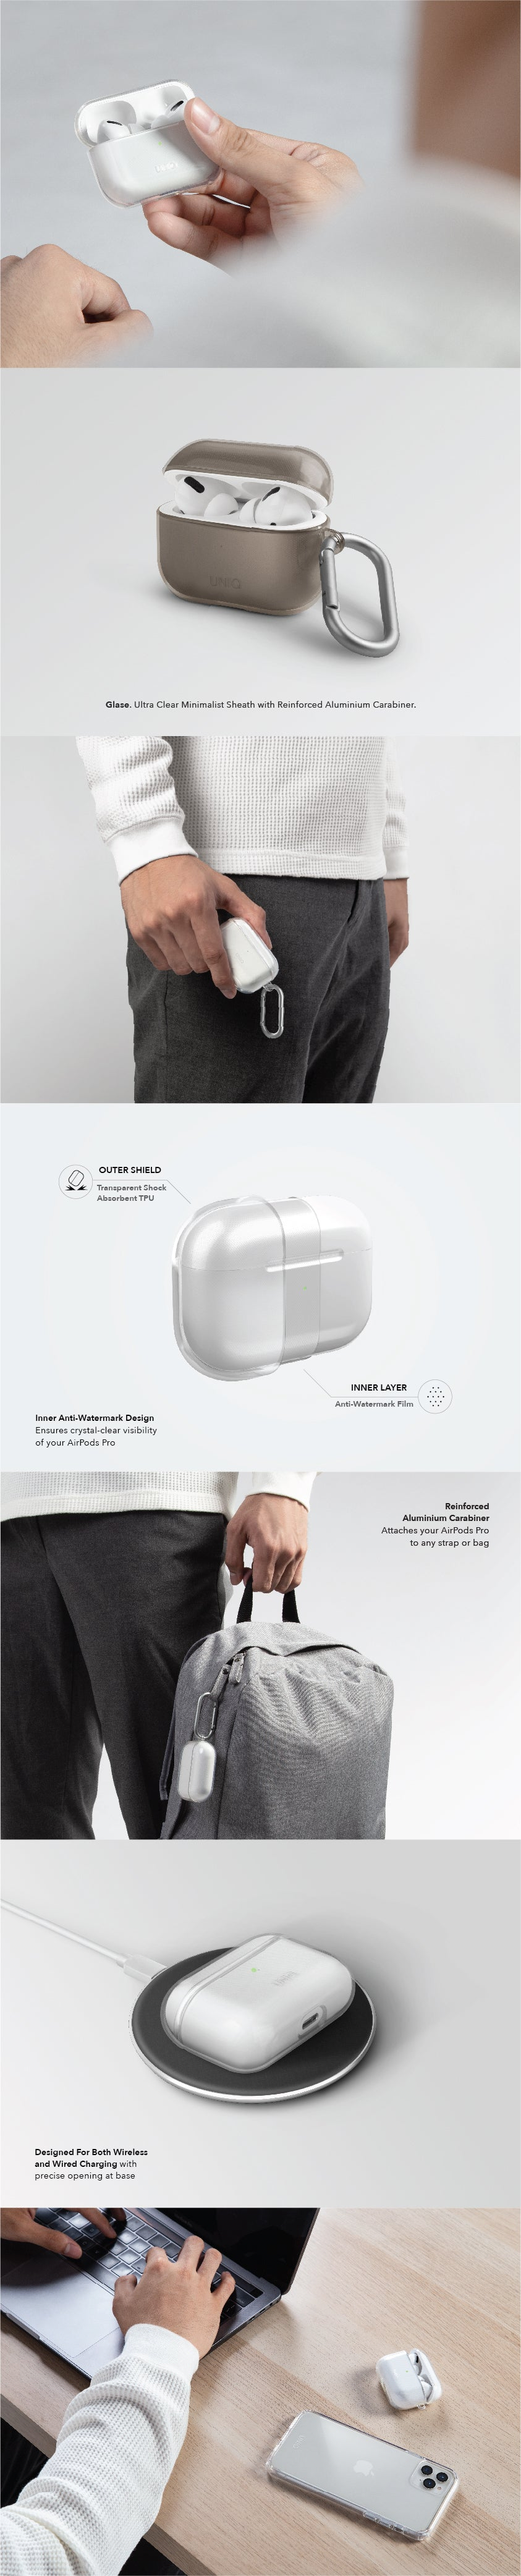 UNIQ Glase Ultra Clear Minimalist AirPods Pro Case with Reinforced Aluminium Carabiner